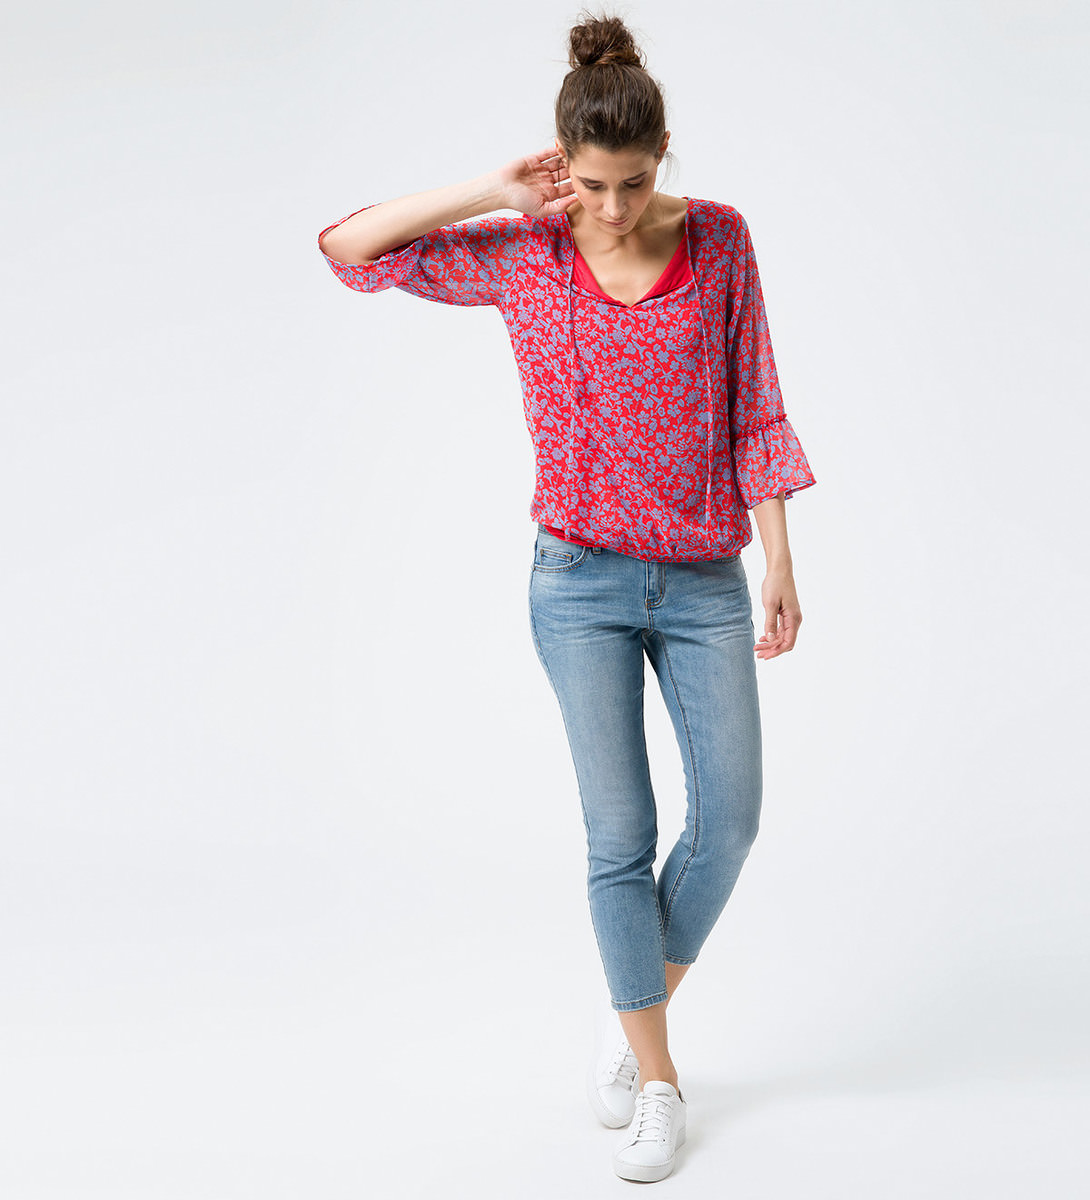 Bluse mit Blumenmuster in hot coral